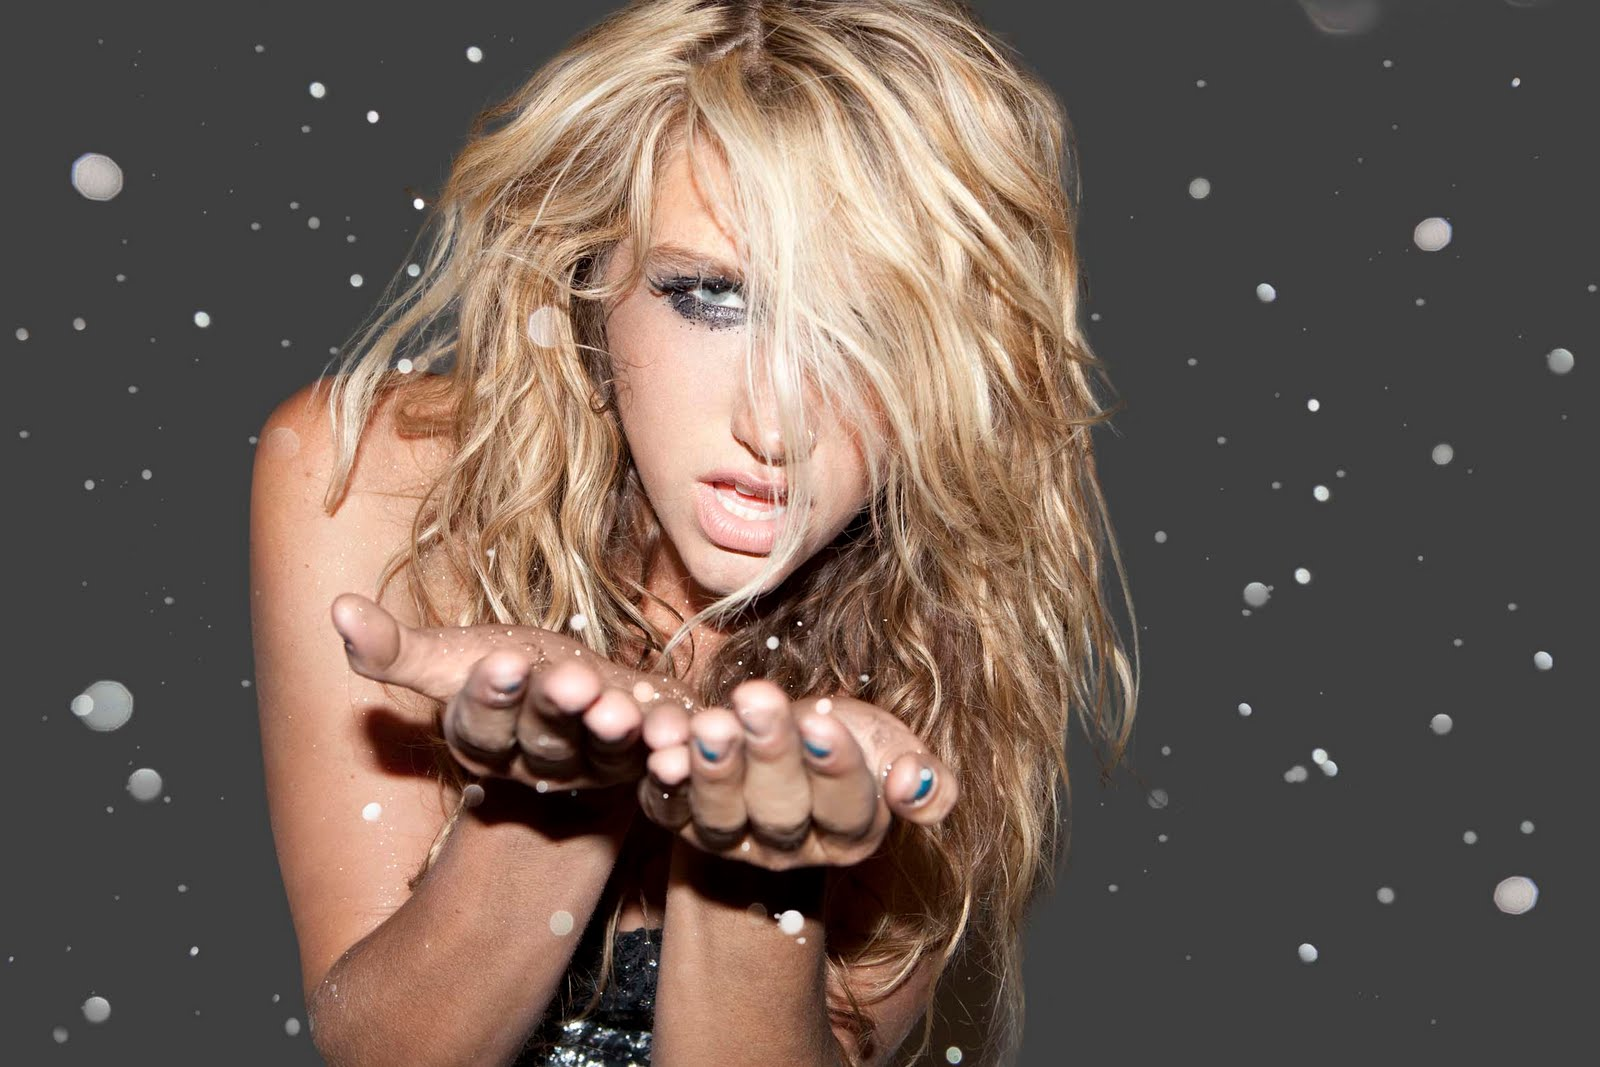 HD Wallpapers   High Definition Wallpapers kesha Maxim Wallpapers 1600x1067